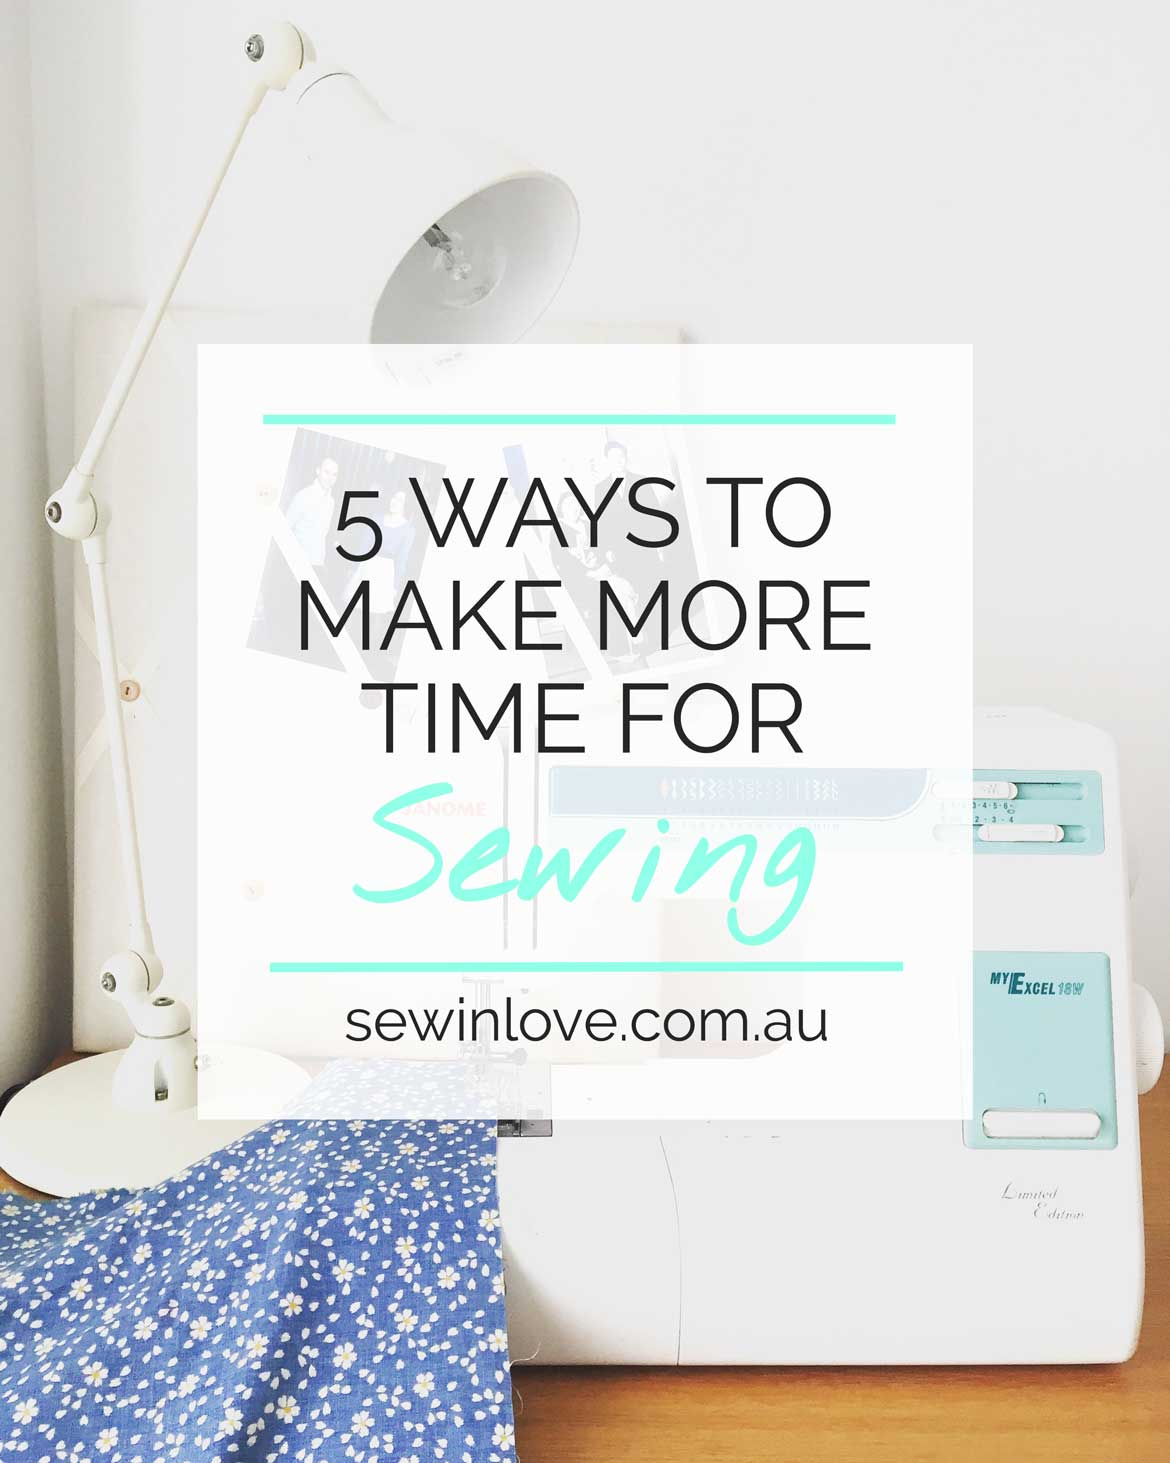 """Do you wish you had more time to sew, or enjoy other creative pursuits? Here are the hacks I've found to help me make more time to sew. I juggle work, blogging and motherhood but it's important to make """"me time"""" a priority too! Read my tips at www.sewinlove.com.au"""